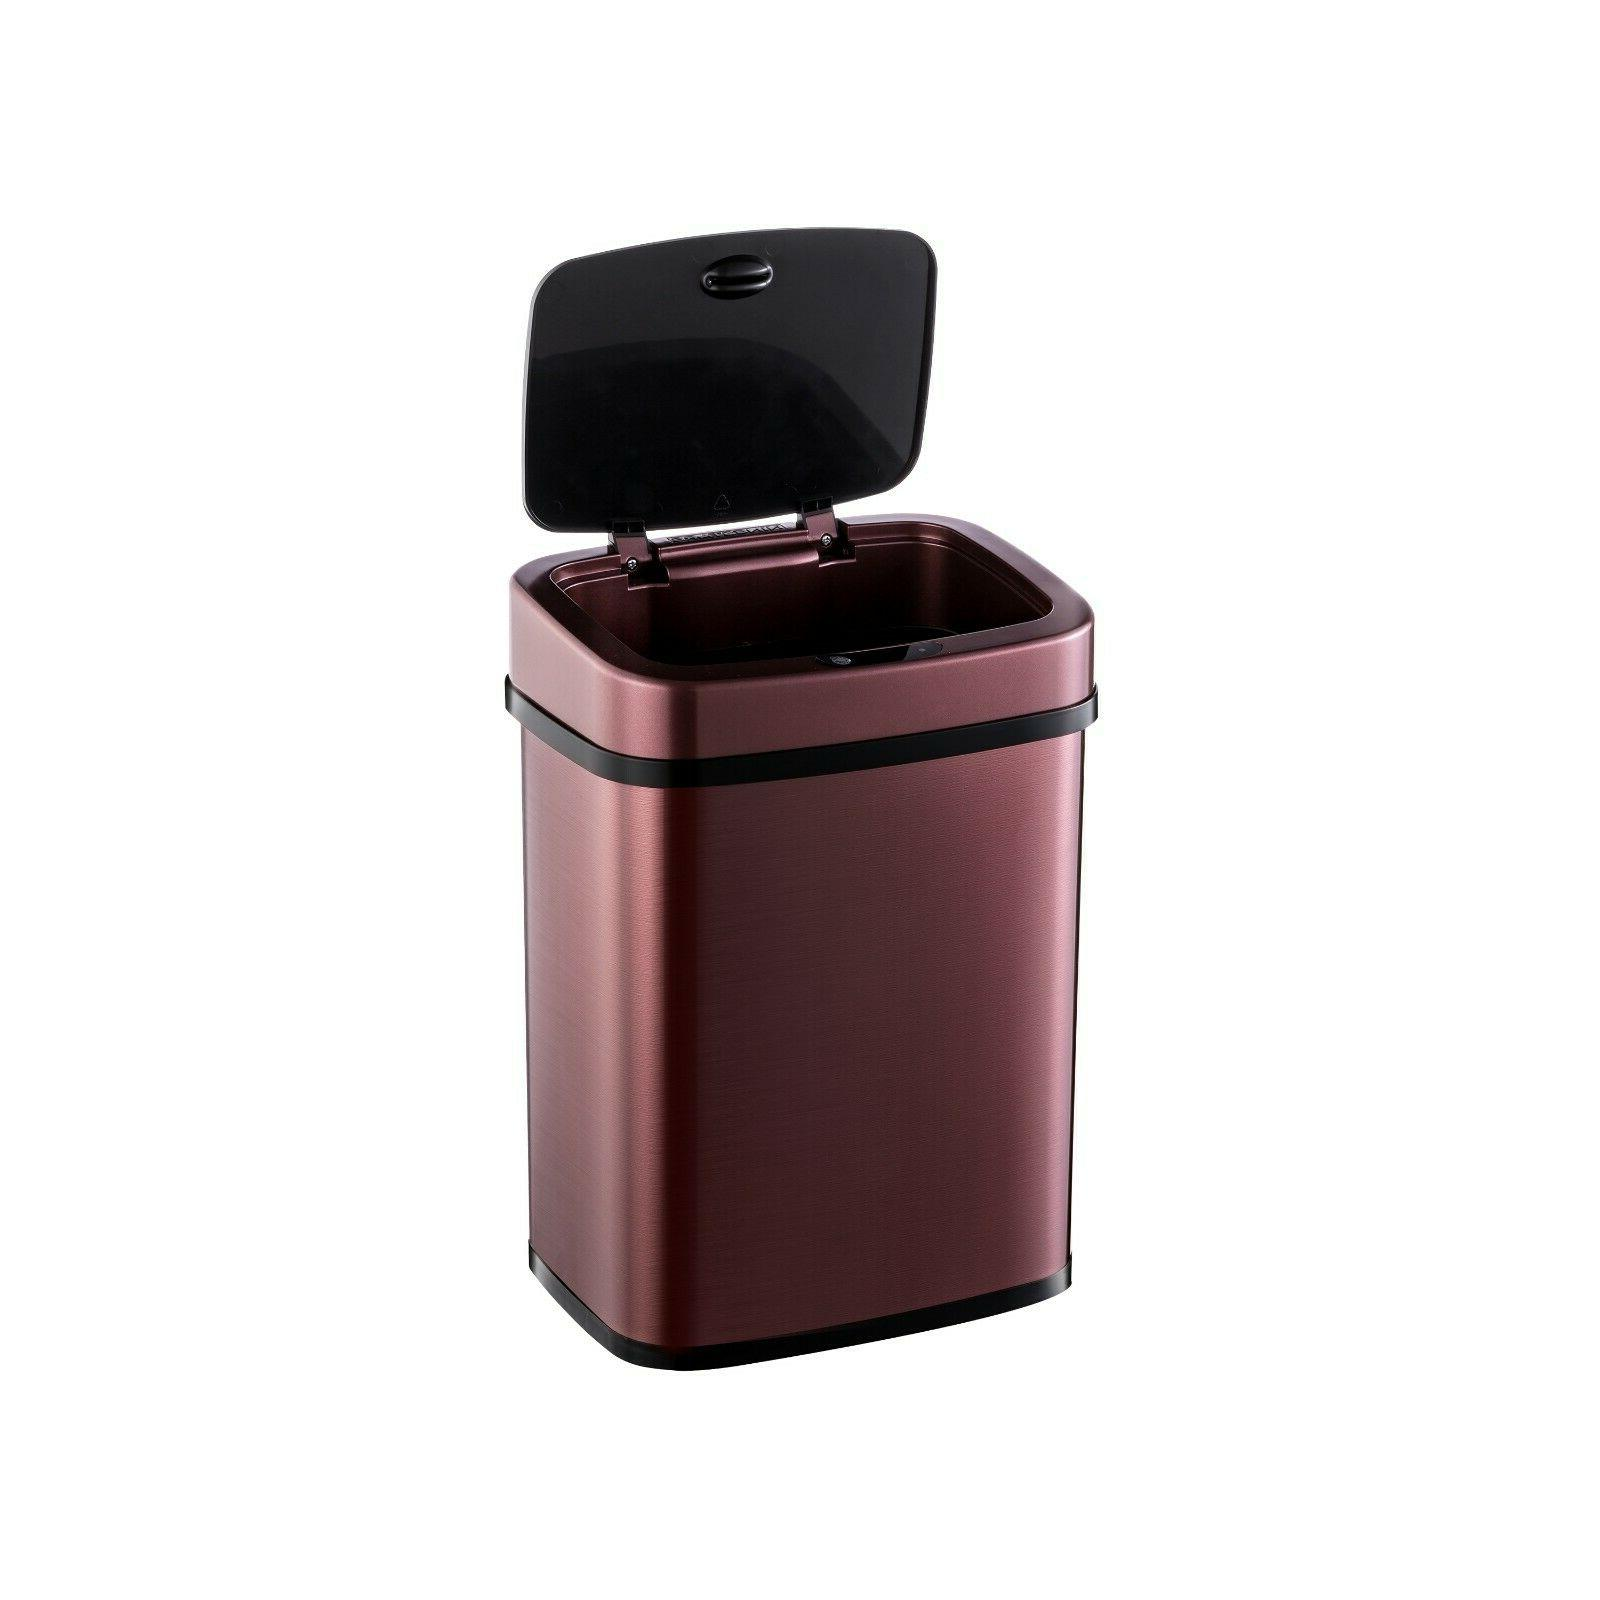 Automatic Touchless Motion Sensor Trash Can gal liters